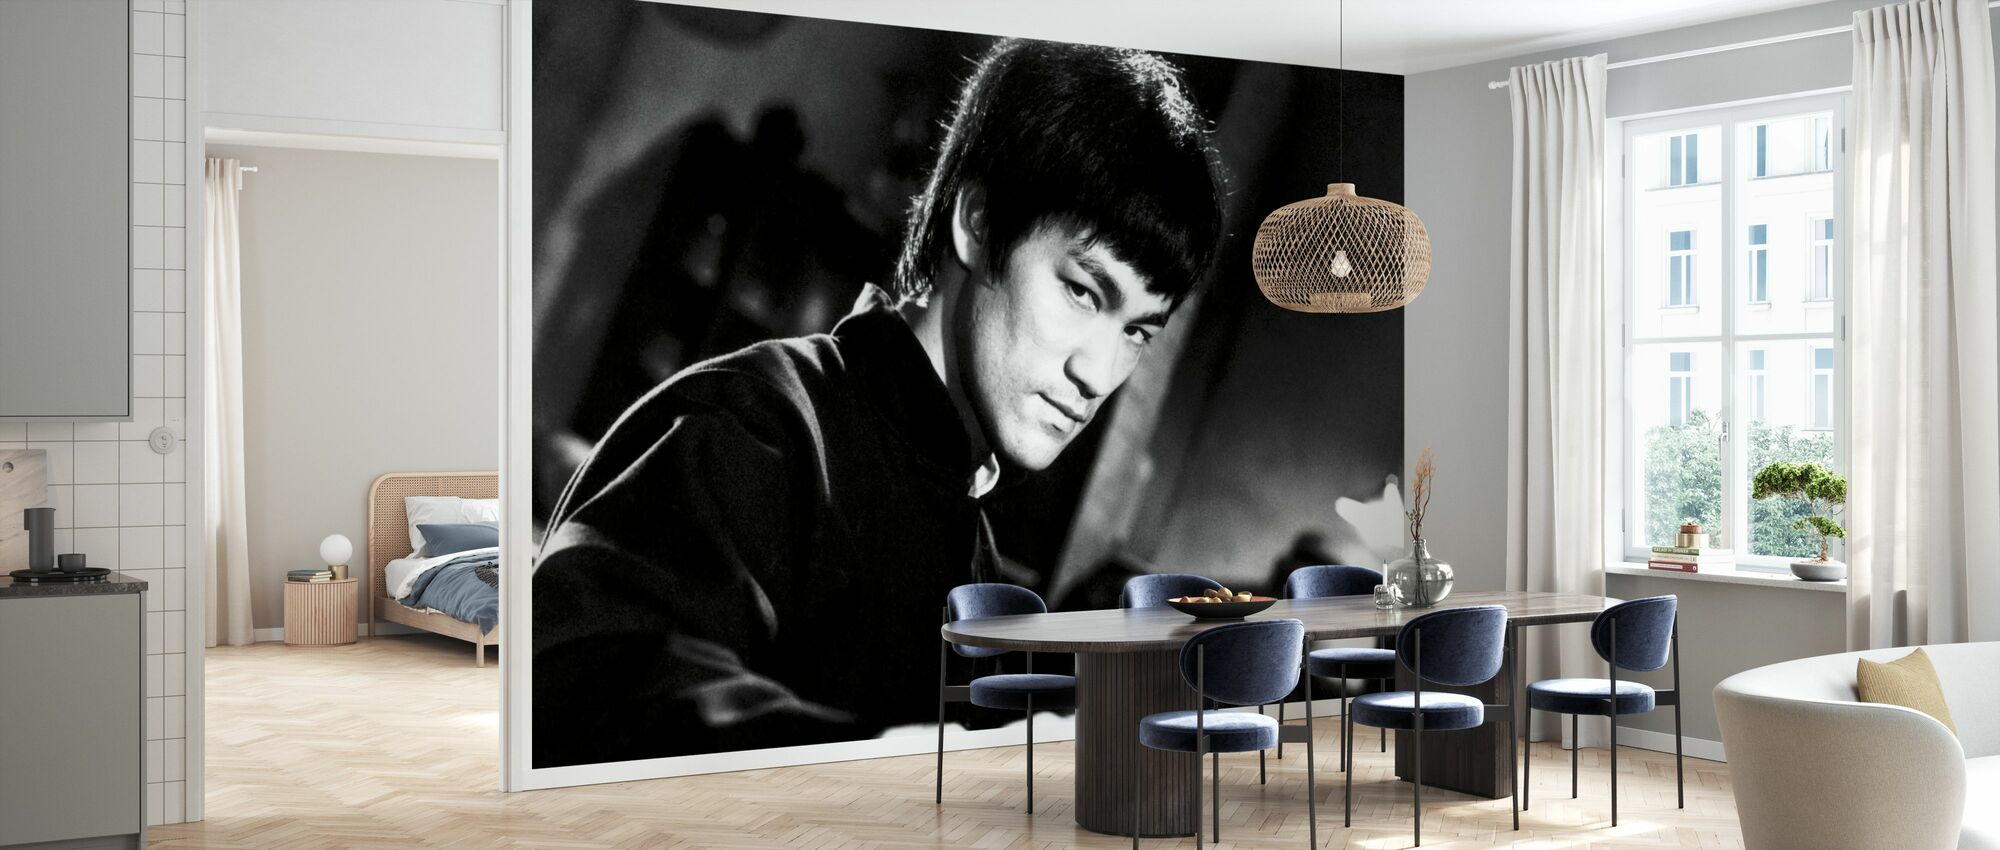 Fighting Stance - Bruce Lee - Wallpaper - Kitchen